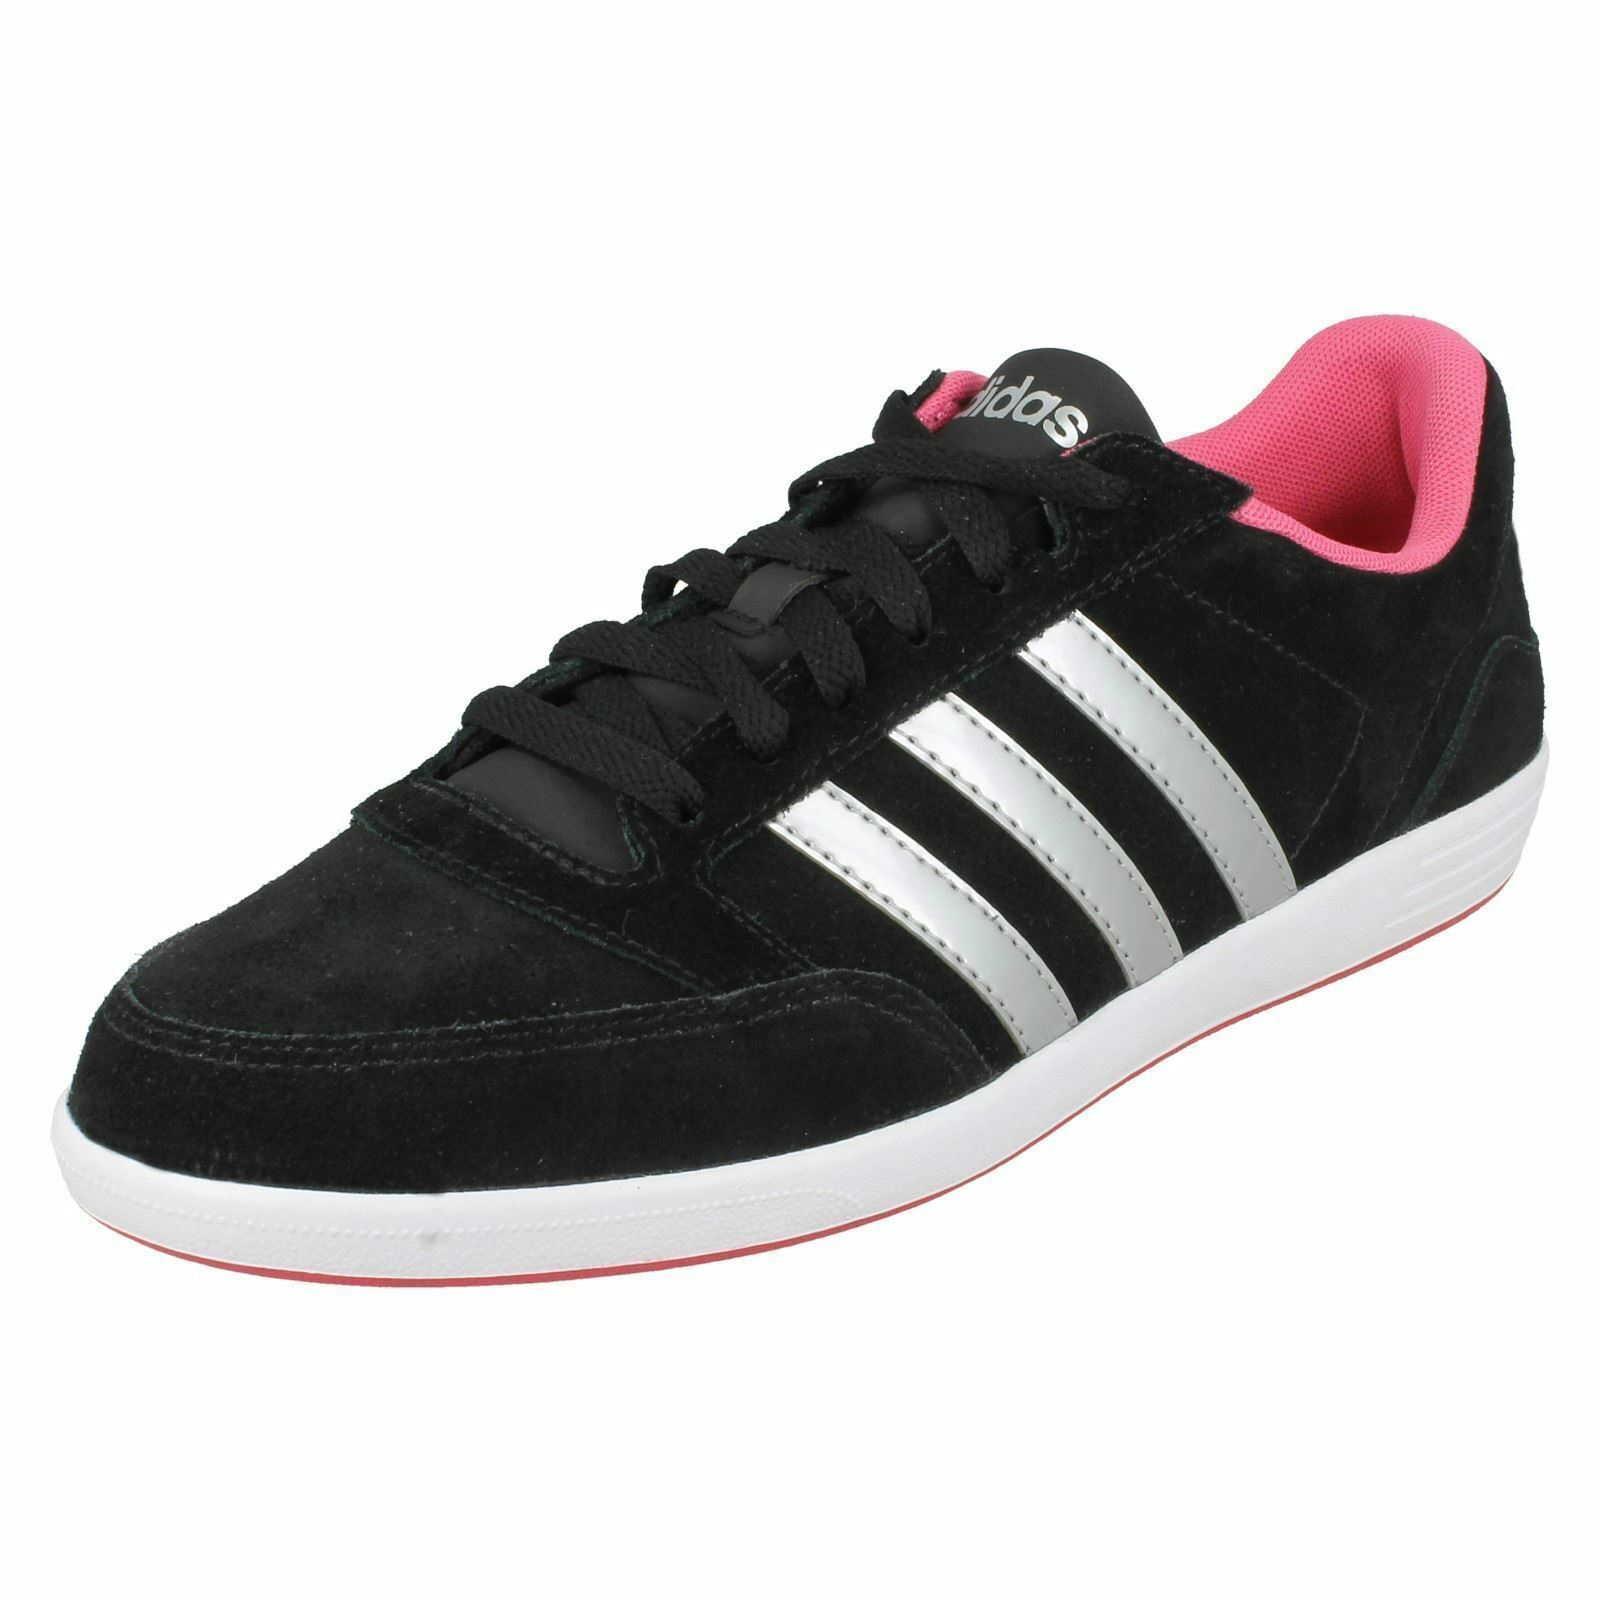 Adidas Neo Hoops VL AW5372 Ladies Trainers Black Silver Pink UK 9&9.5 (R3A)